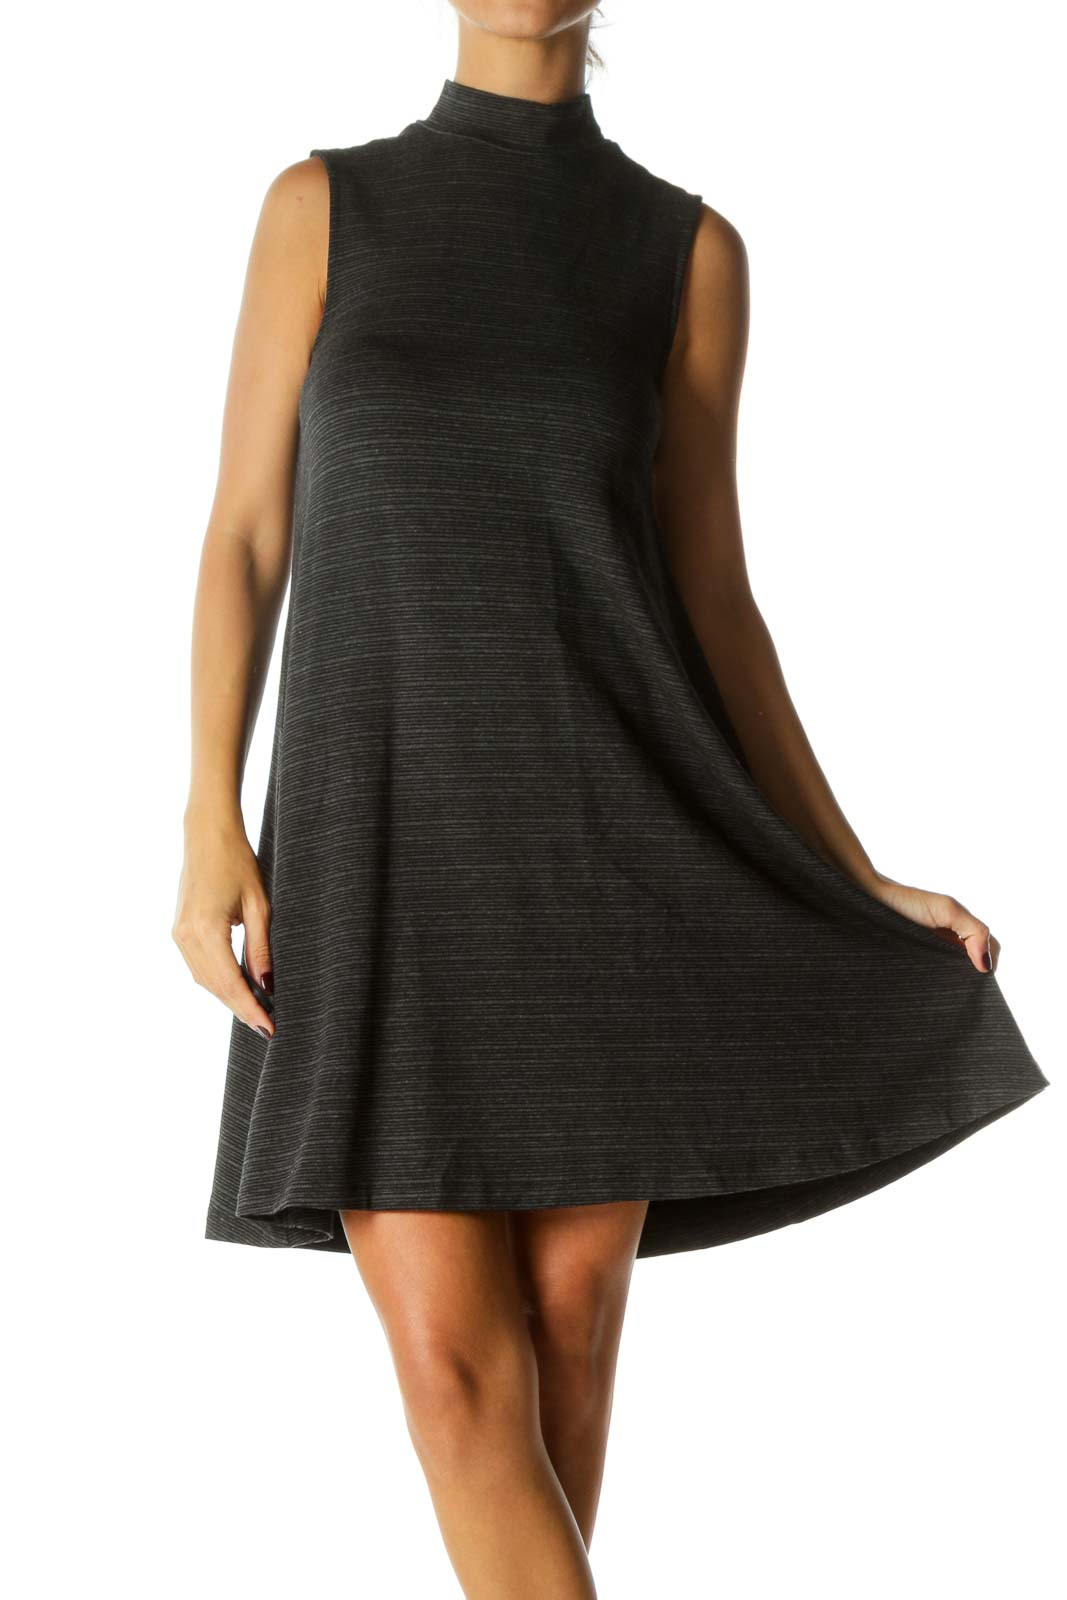 Black Gray Striped High Neck Sleeveless Flared Stretch Dress